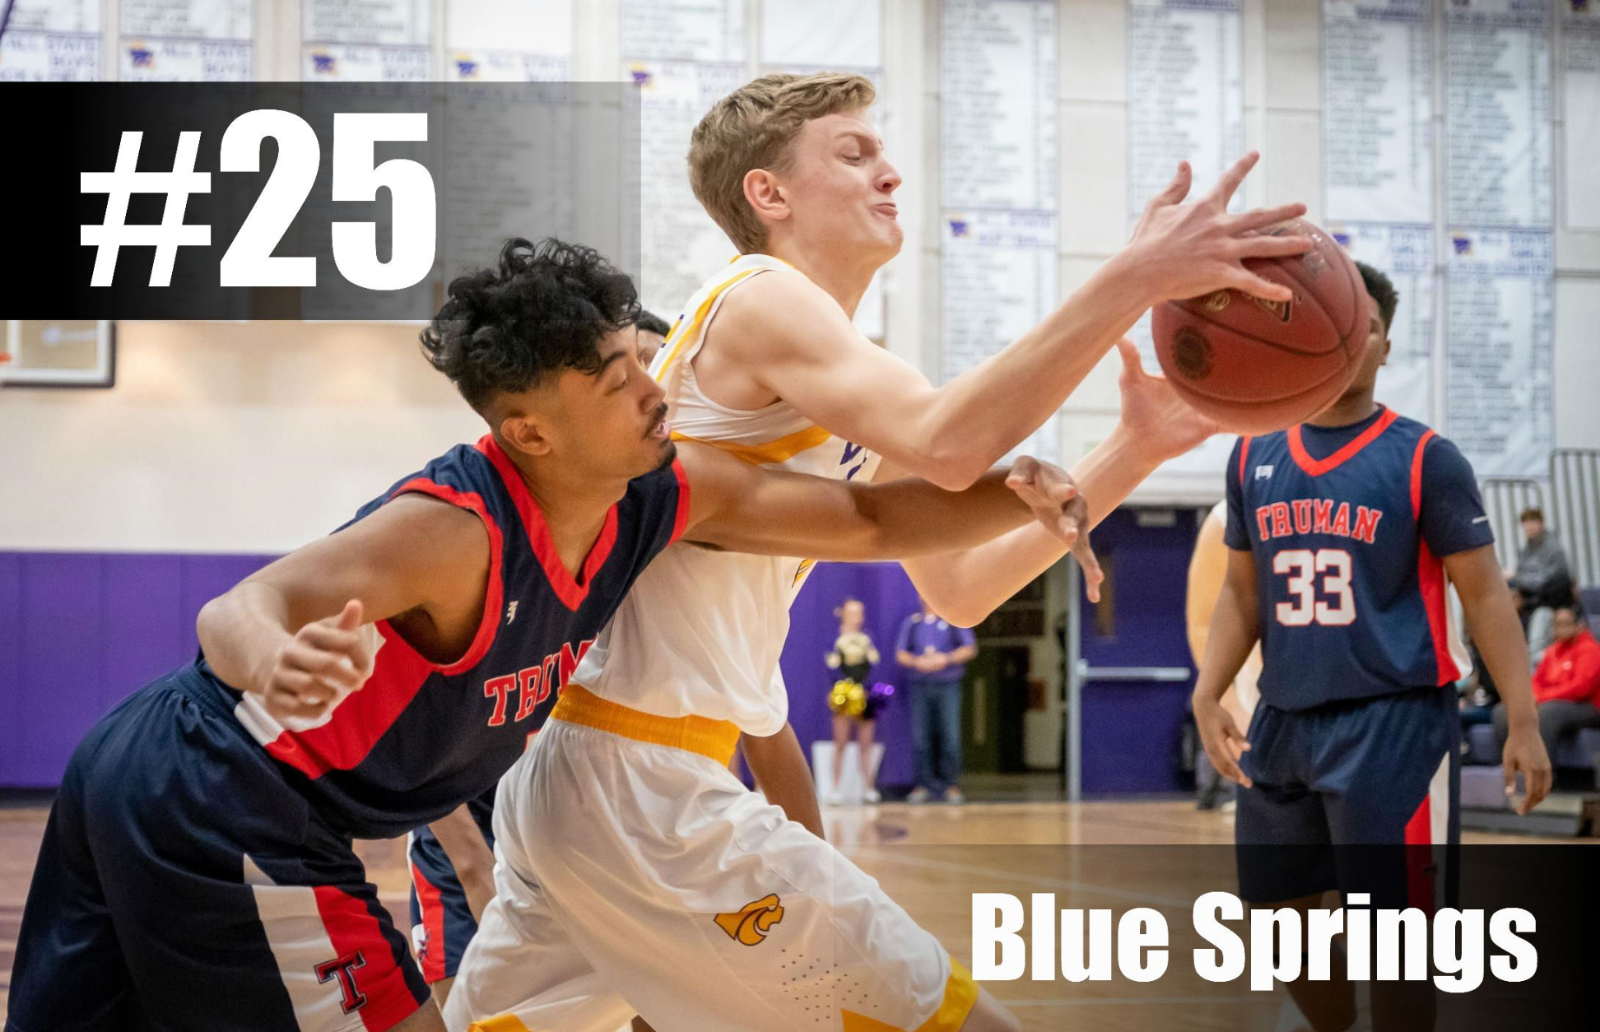 BOYS BASKETBALL RANKED 25TH IN INITIAL 810 VARSITY POLL